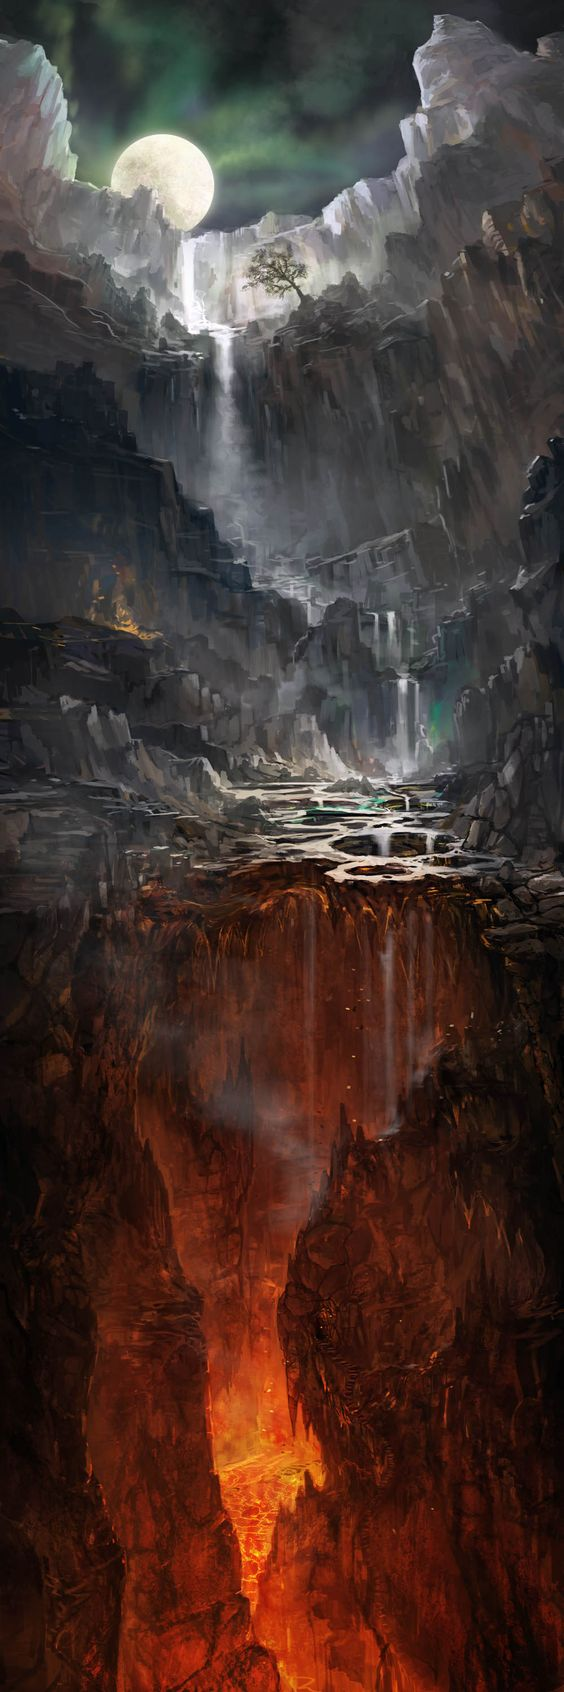 Inspiration for the Deep End of the Hollowlands. #MetalShadow Great Chasm by jbrown67 on deviantART